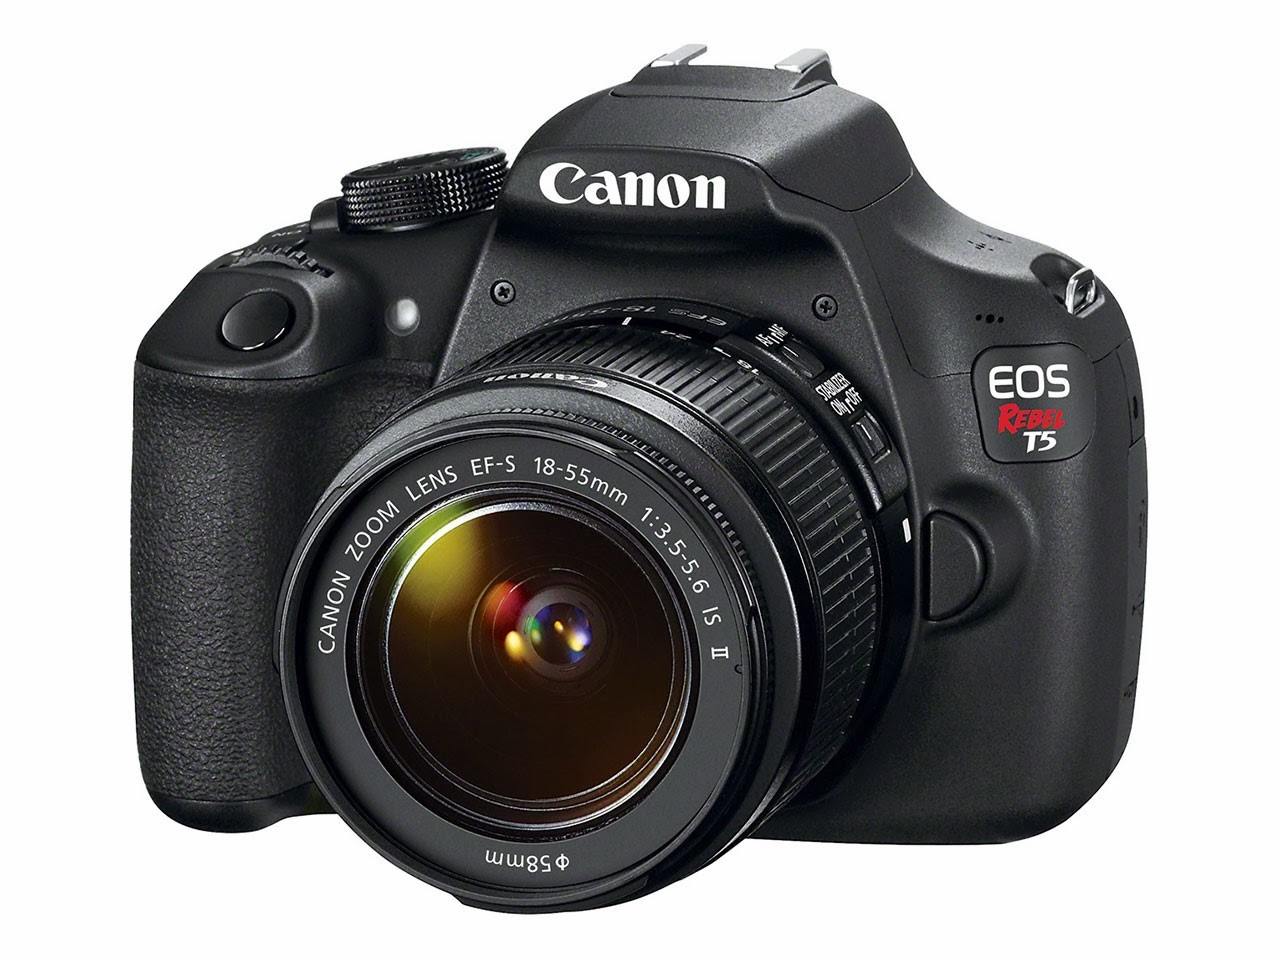 Canon Rebel T5, Canon EOS 1200D, new entry level DSLR, new Canon EOS, DSLR camera, Canon lens, Full HD, third party lens